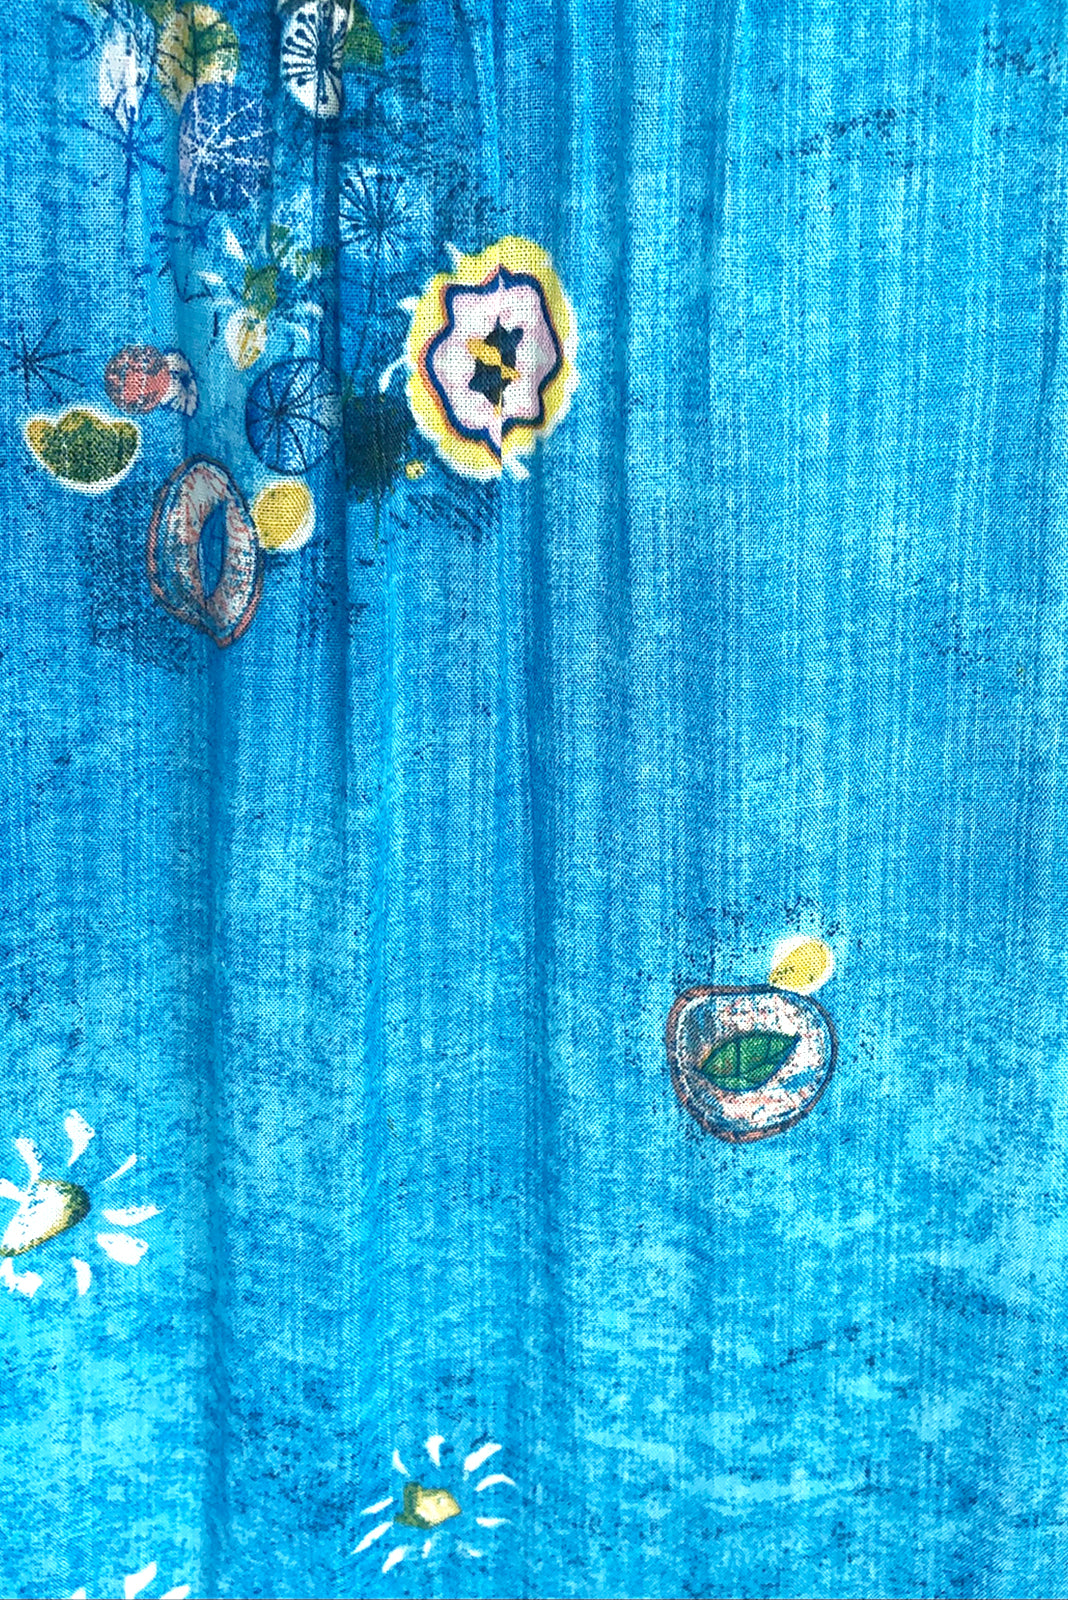 Fabric Swatch of lulu Loves Clear Water Blue Maxi Dress featuring 100% cotton in blue wash effect base with abstract floral print.